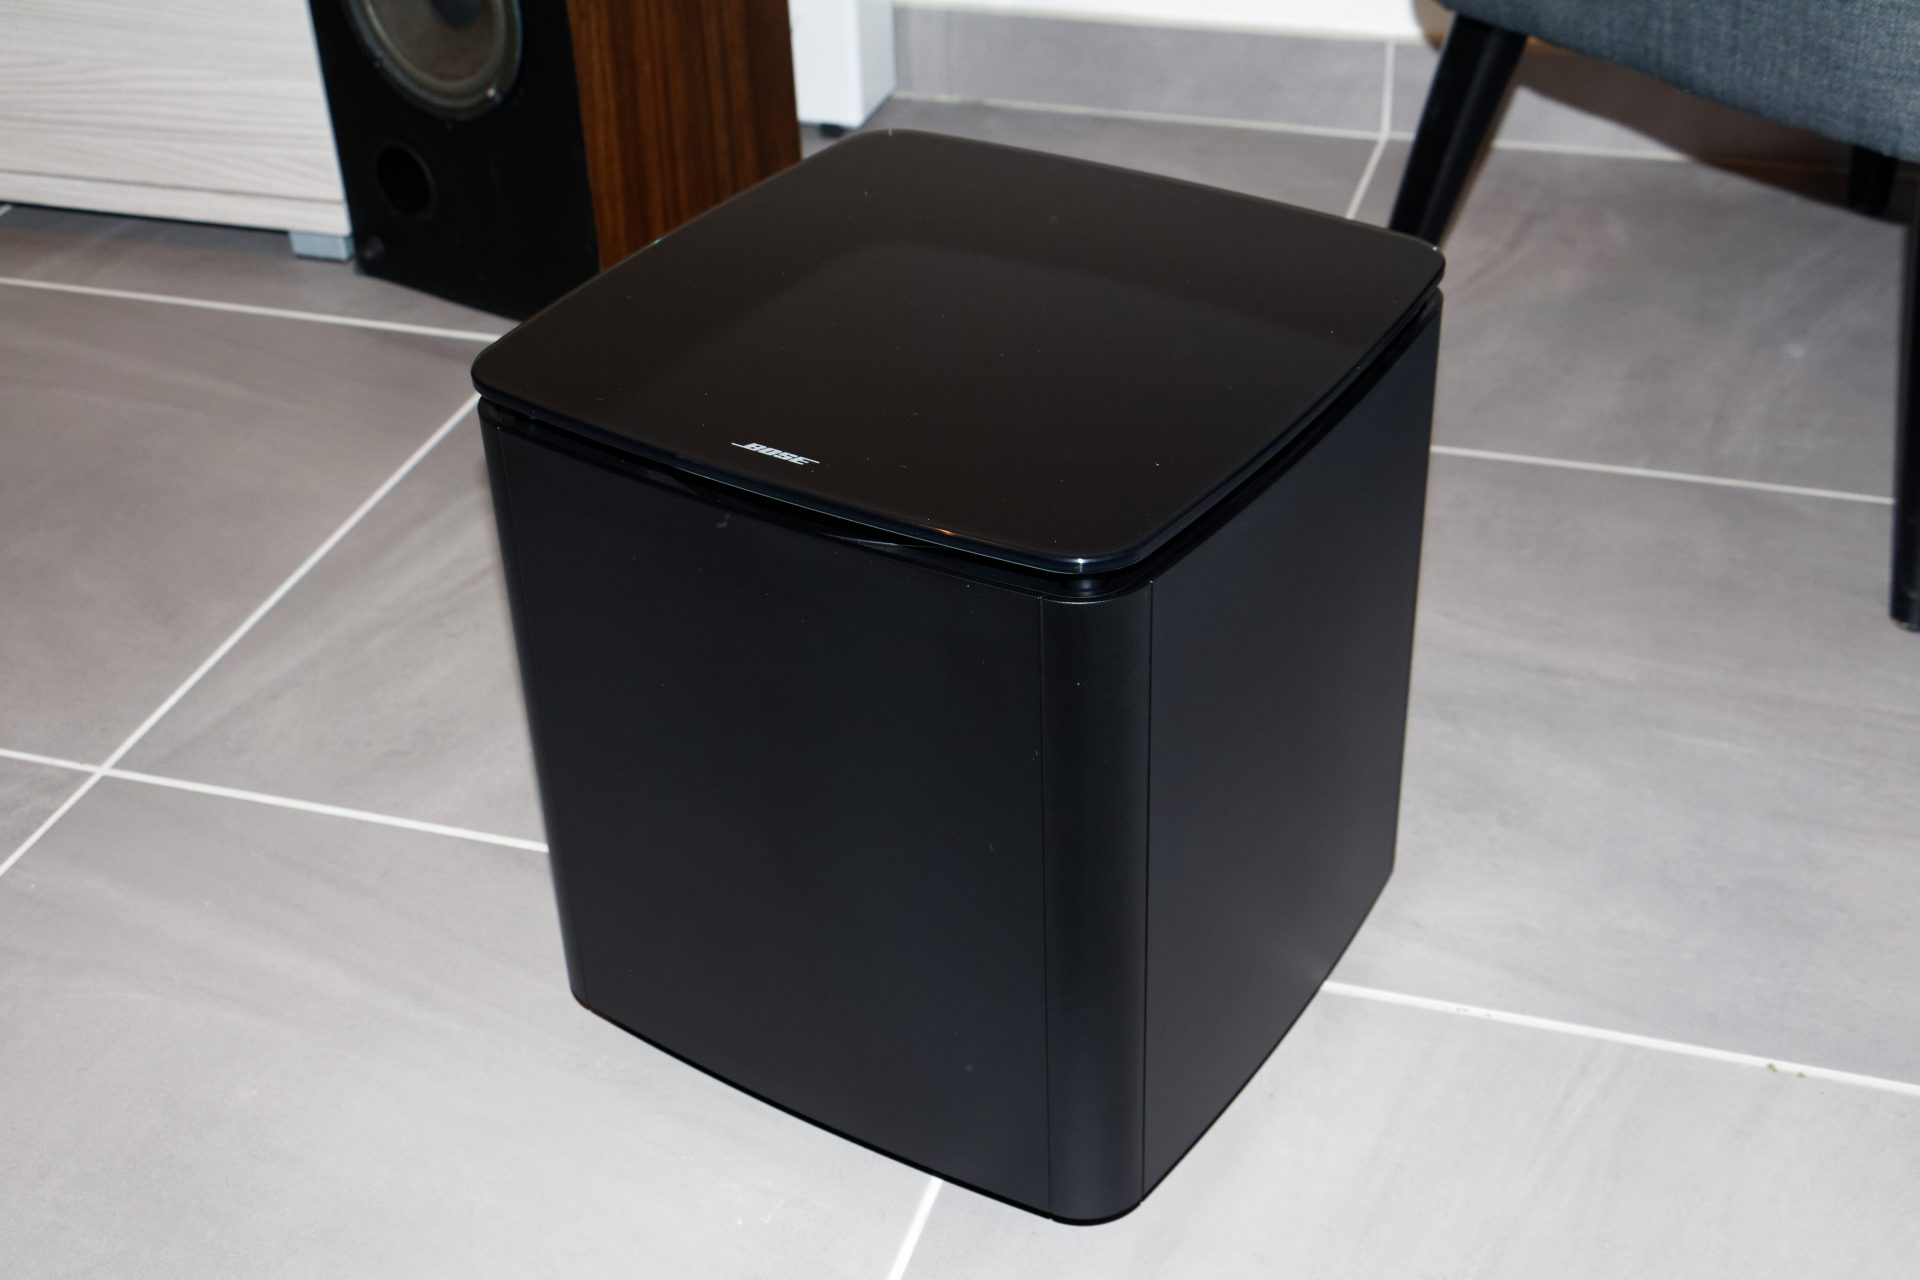 test du caisson bose acoustimass 300. Black Bedroom Furniture Sets. Home Design Ideas